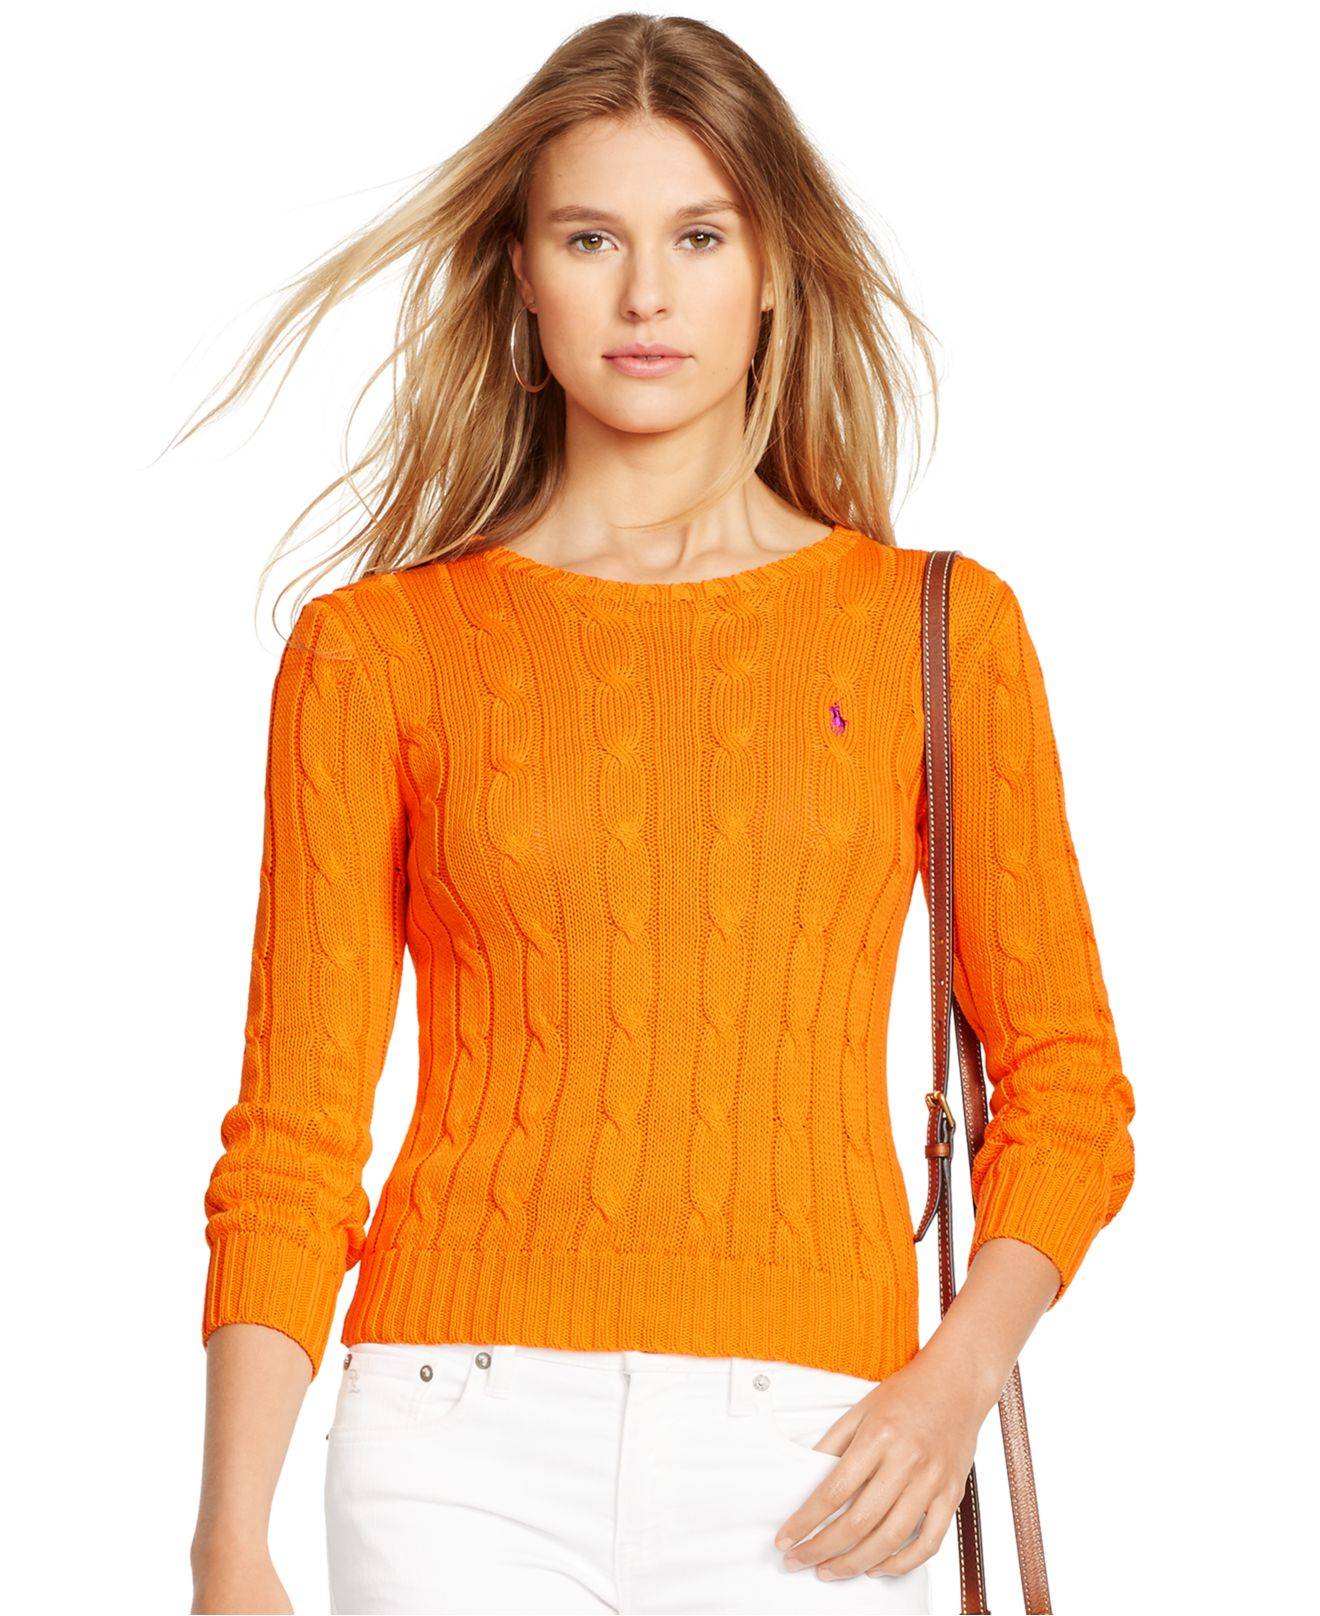 Polo ralph lauren Cable-knit Cotton Sweater in Orange | Lyst